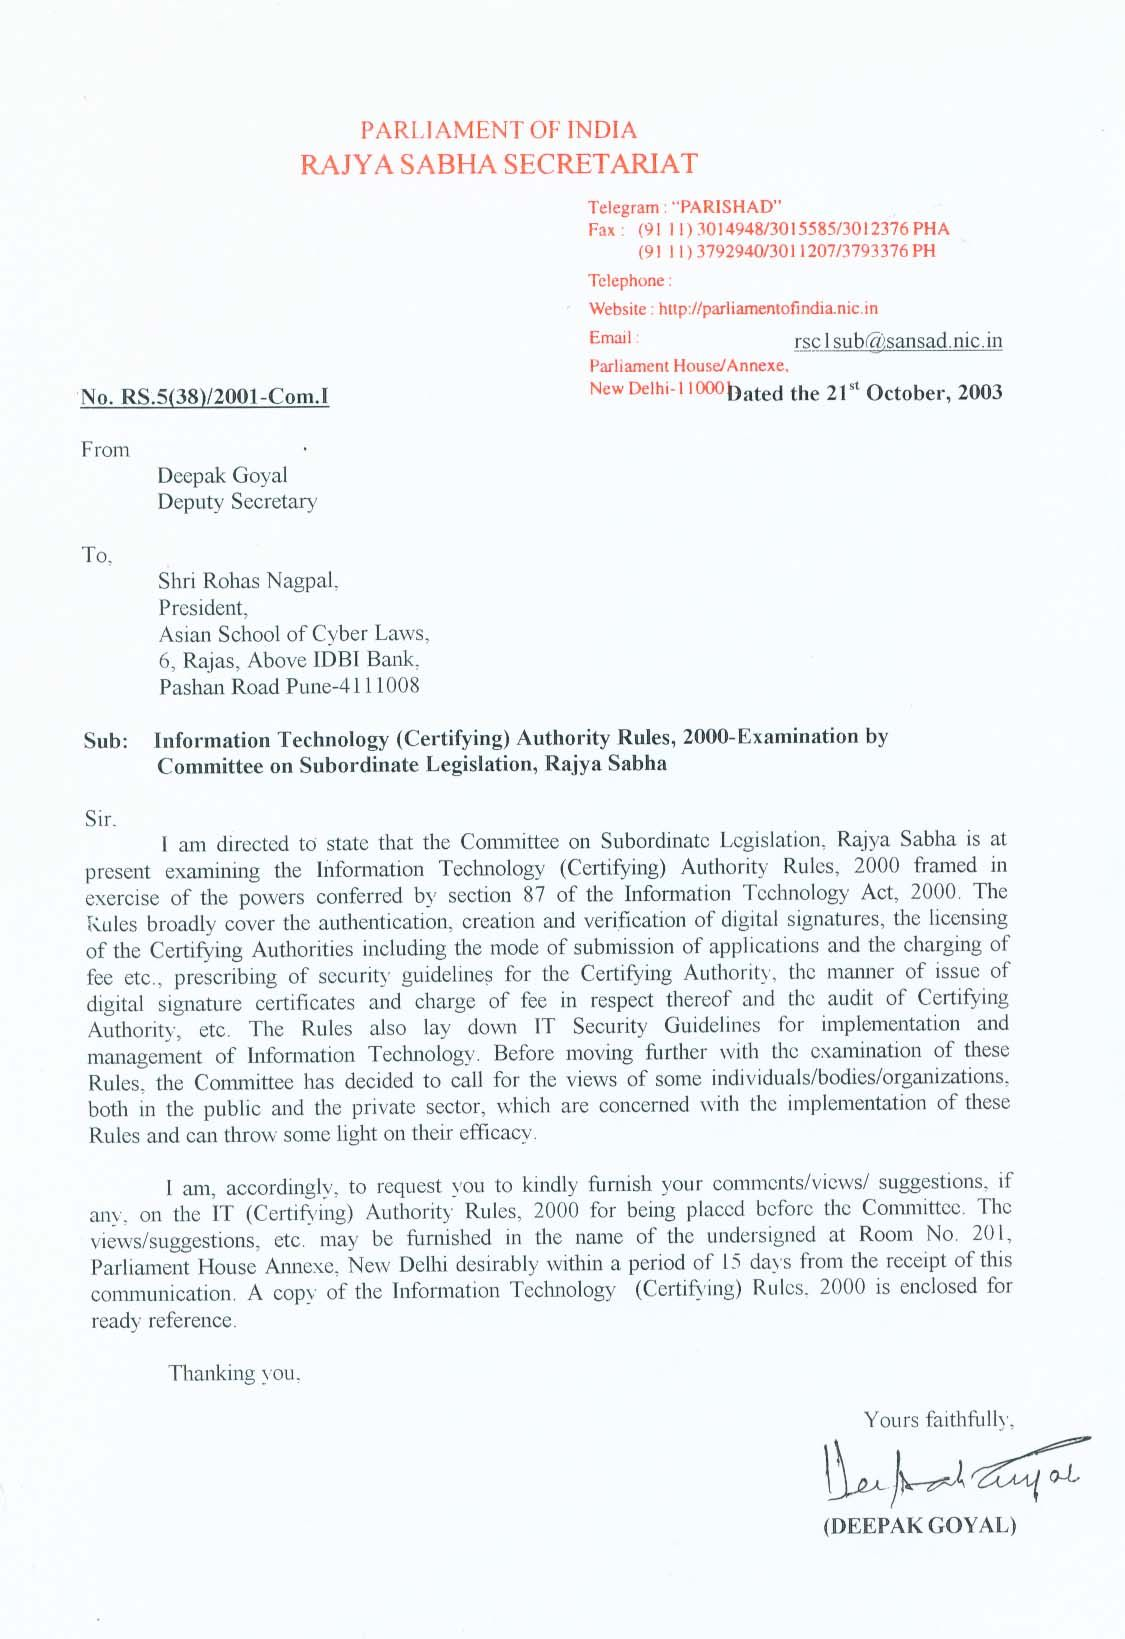 Letter Requesting Comments About The It Certifying Authority